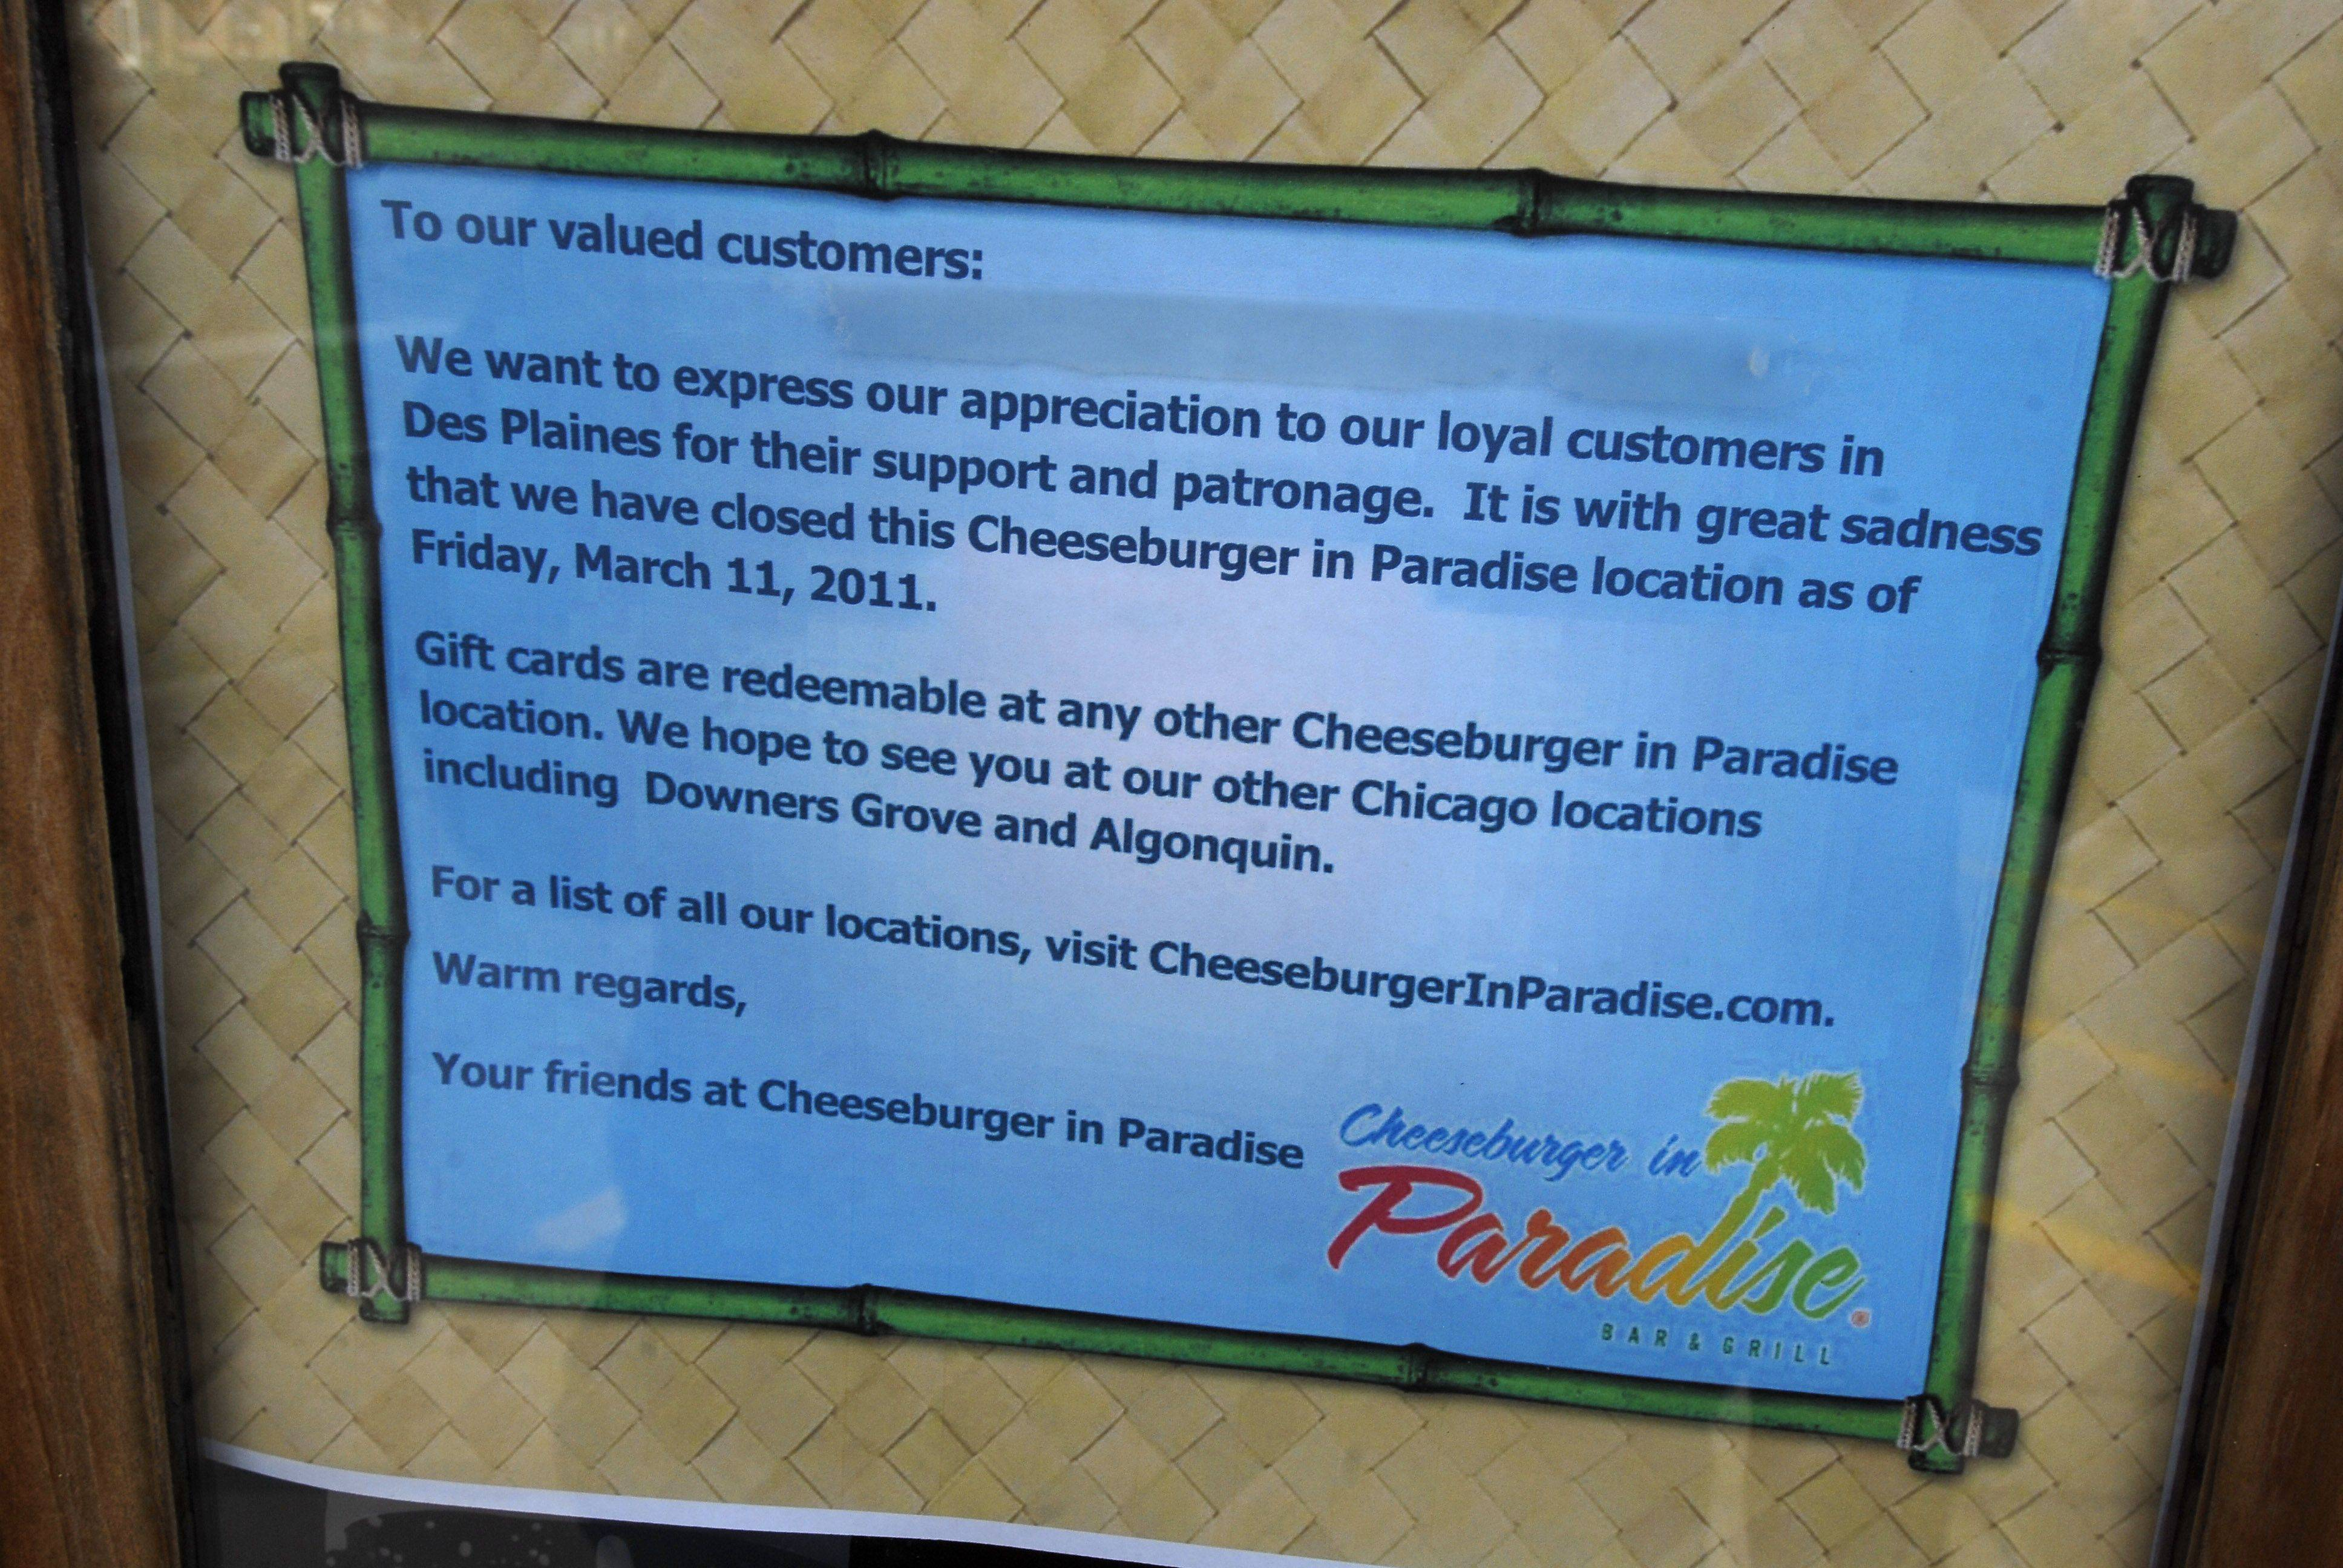 Bill Zars/bzars@dailyherald.comA sign posted on the door at Cheeseburger in Paradise in Des Plaines thanks customers. March 11 was the restaurant's last day of operation after being in business for five years.